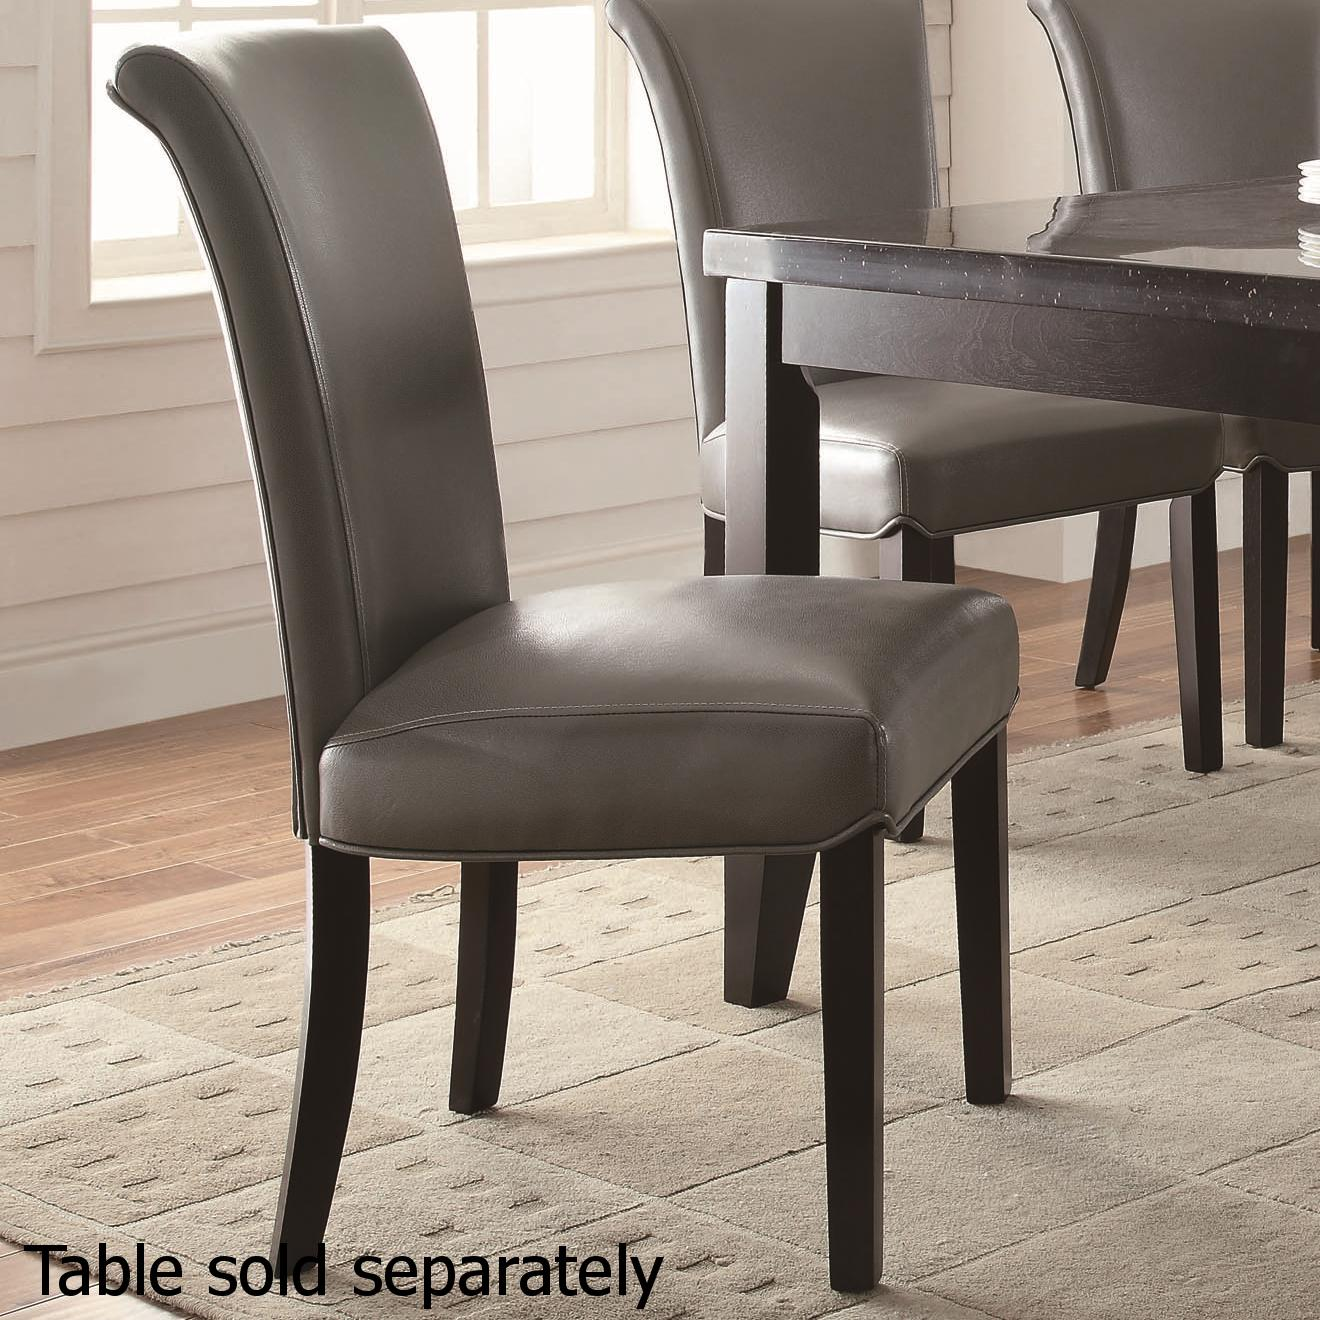 Grey Dining Room Chairs: Steal-A-Sofa Furniture Outlet Los